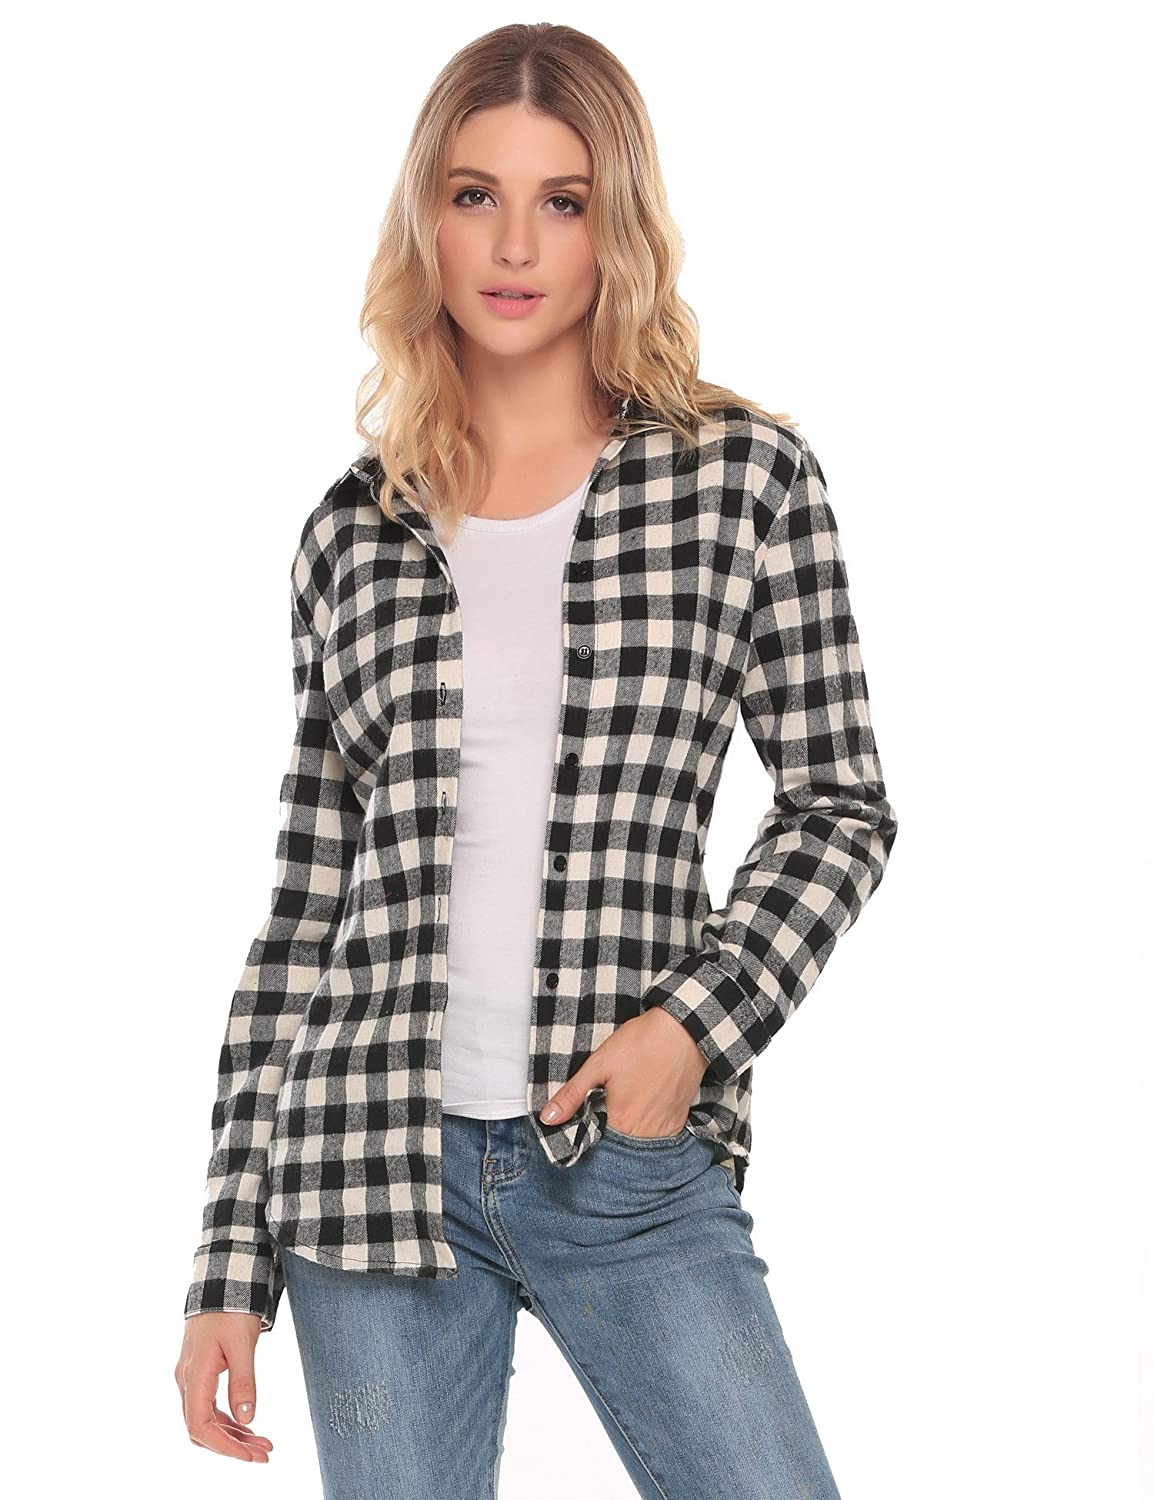 11d3a61d37a92 Top 10 wholesale Womens Button Up Flannel Shirts - Chinabrands.com